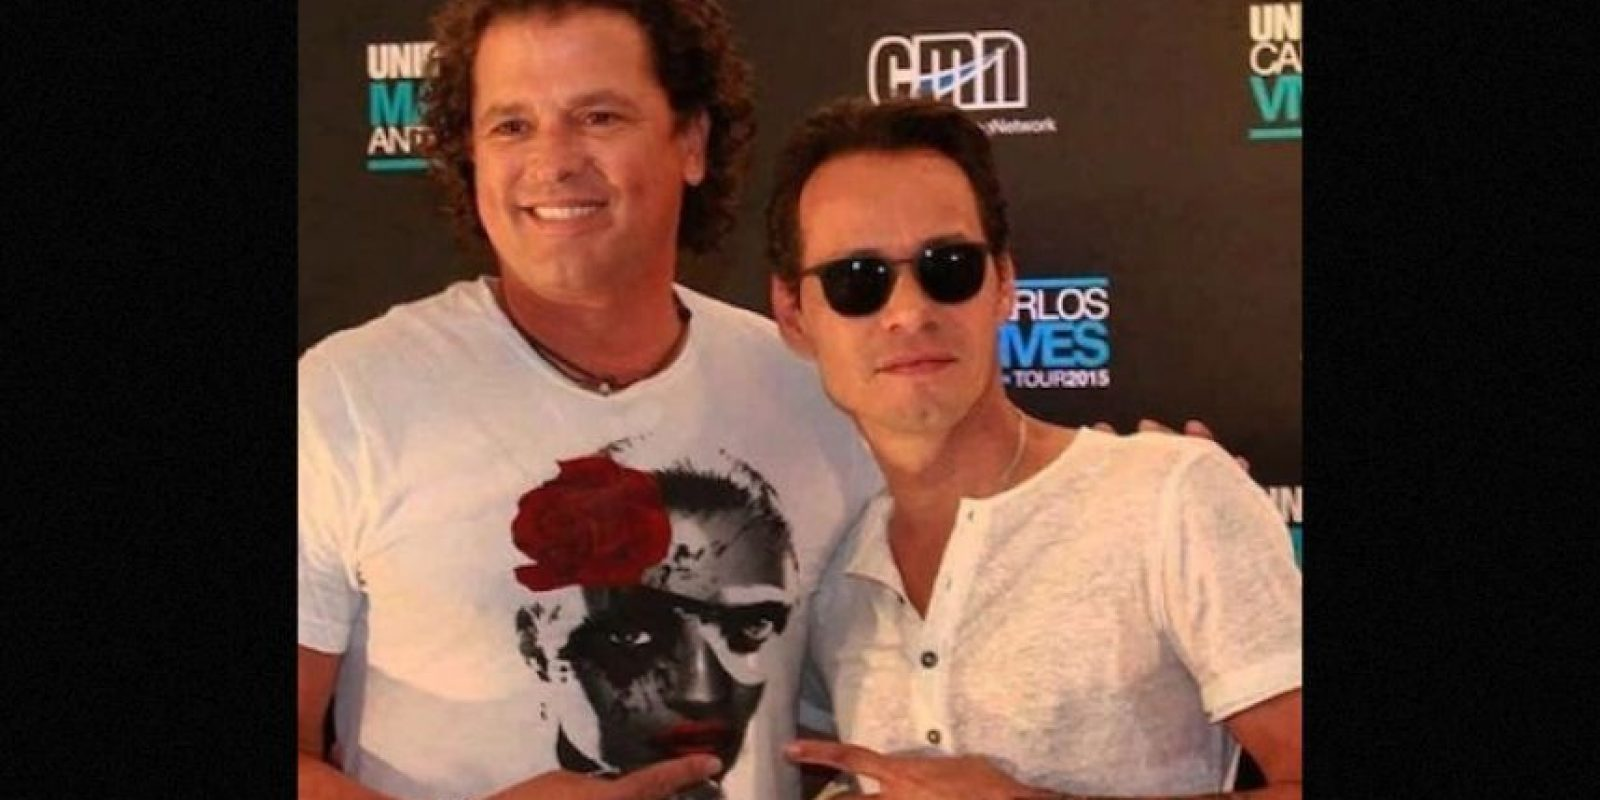 Carlos Vives y Marc Anthony Foto: Instagram/marcanthony